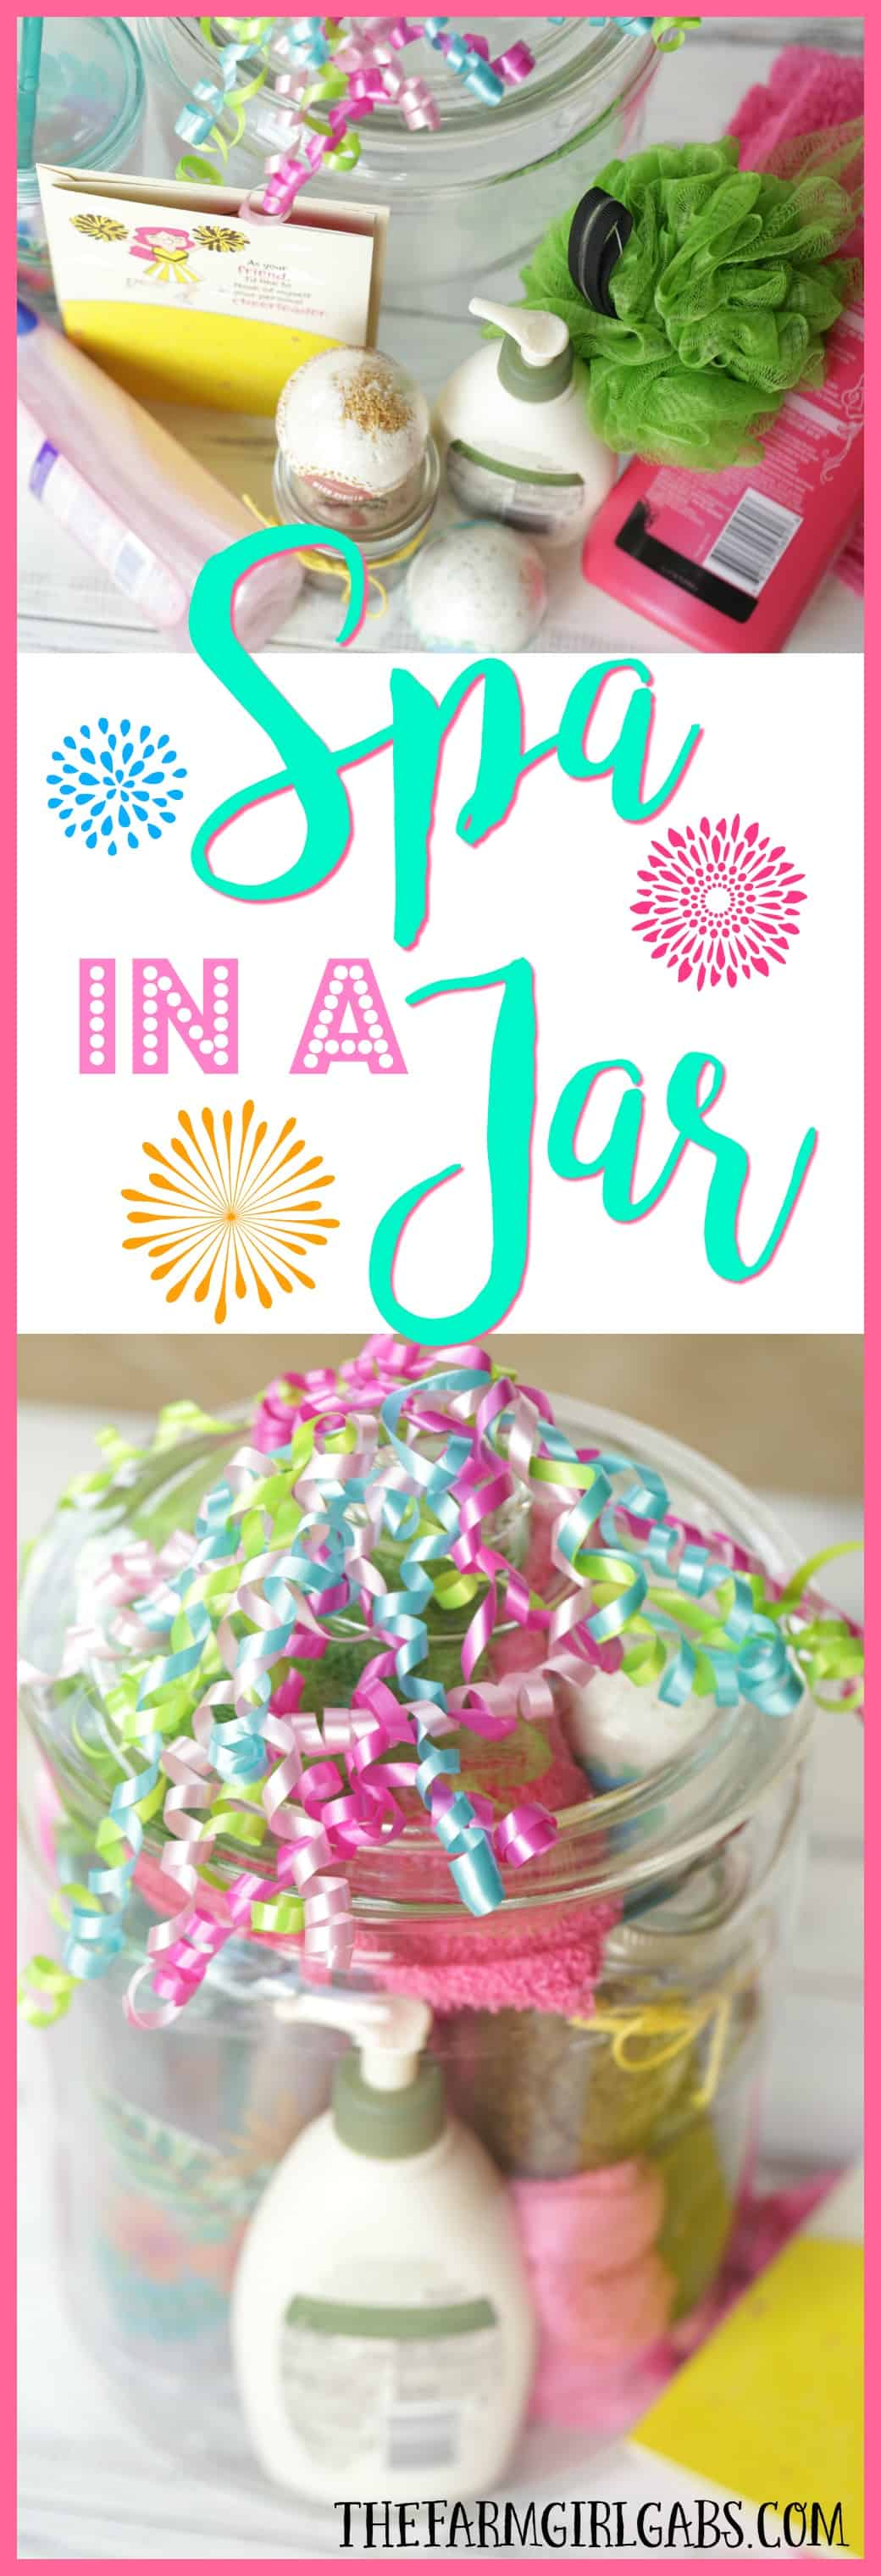 Celebrate that special friend in your life by giving them a Spa In A Jar. This jar has all the essentials they need for the perfect pampering spa day at home - along with a DIY Coffee Sugar Scrub you can make and include. #Ad #CelebrateAllSummer